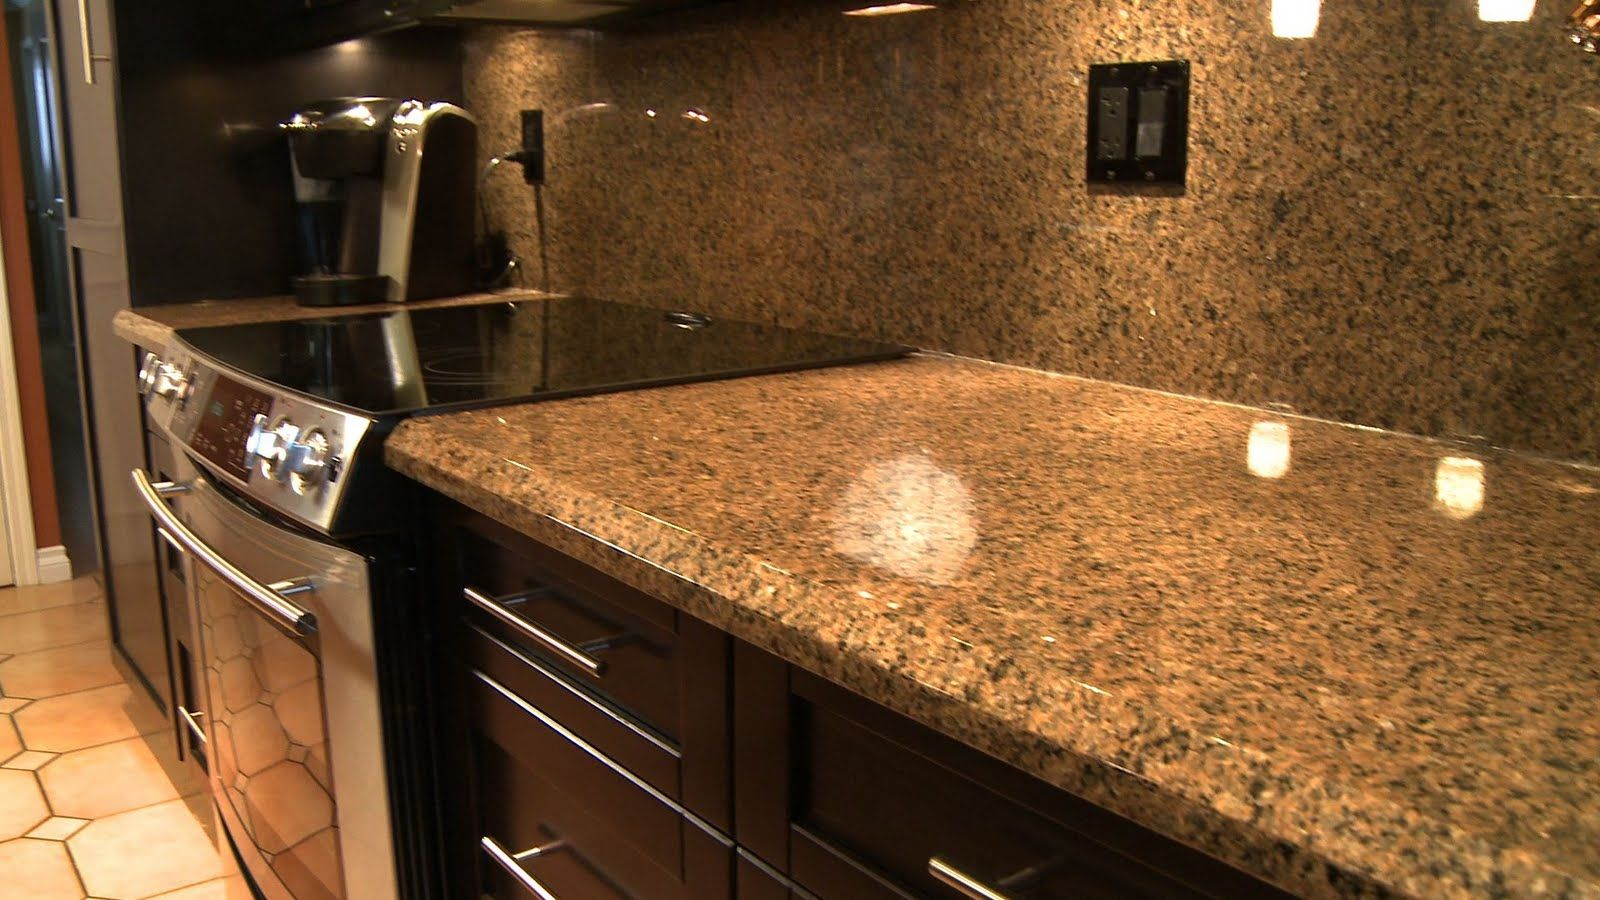 Peel N Stick Instant Vinly Counter Top Faux Fake Granite Film Overlay Roll  Gold In Home U0026 Garden, Home Décor, Decals, Stickers U0026 Vinyl Art